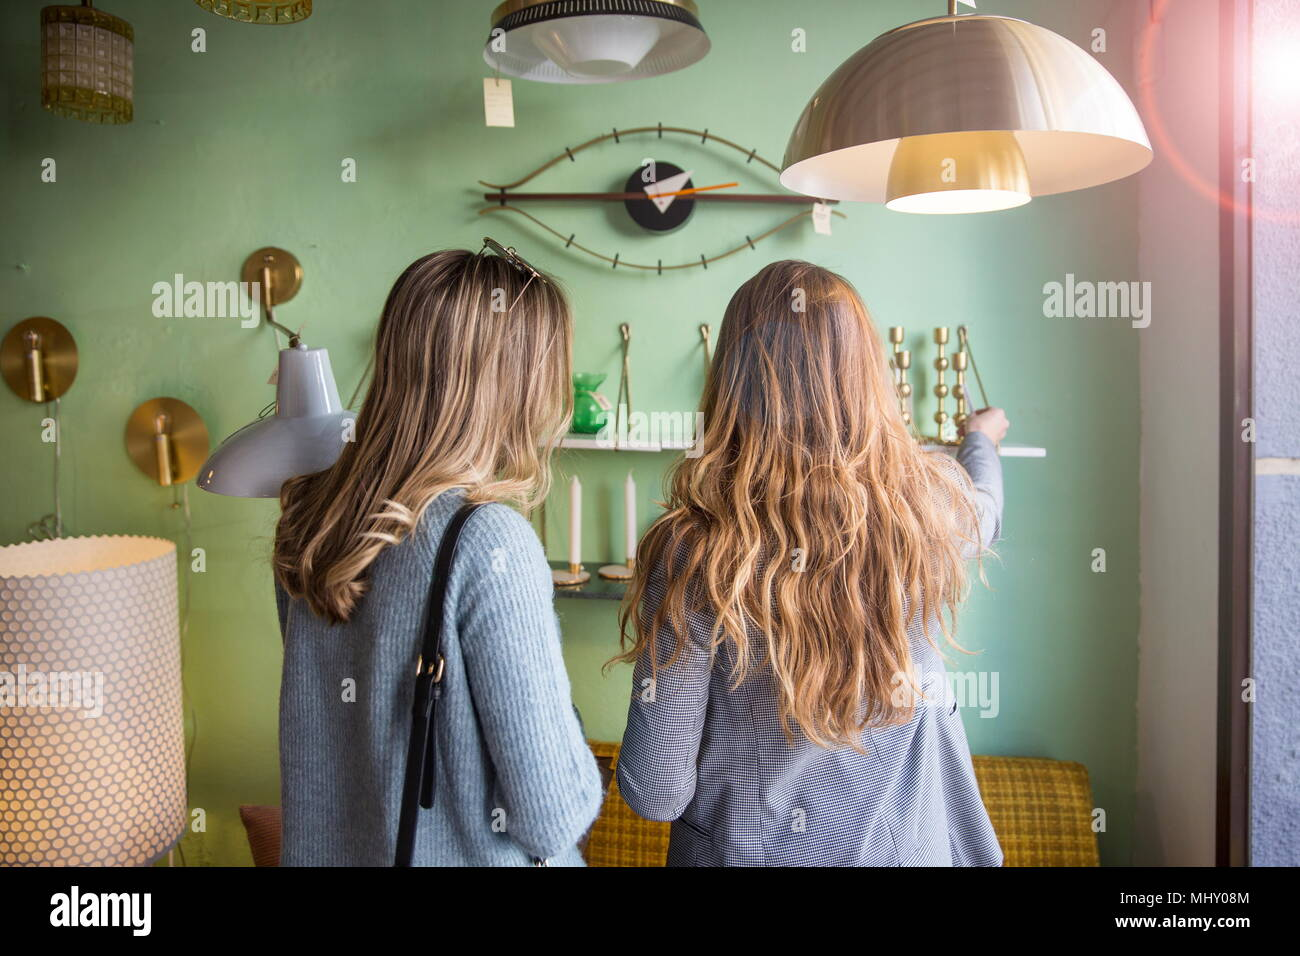 Friends shopping in lighting shop - Stock Image